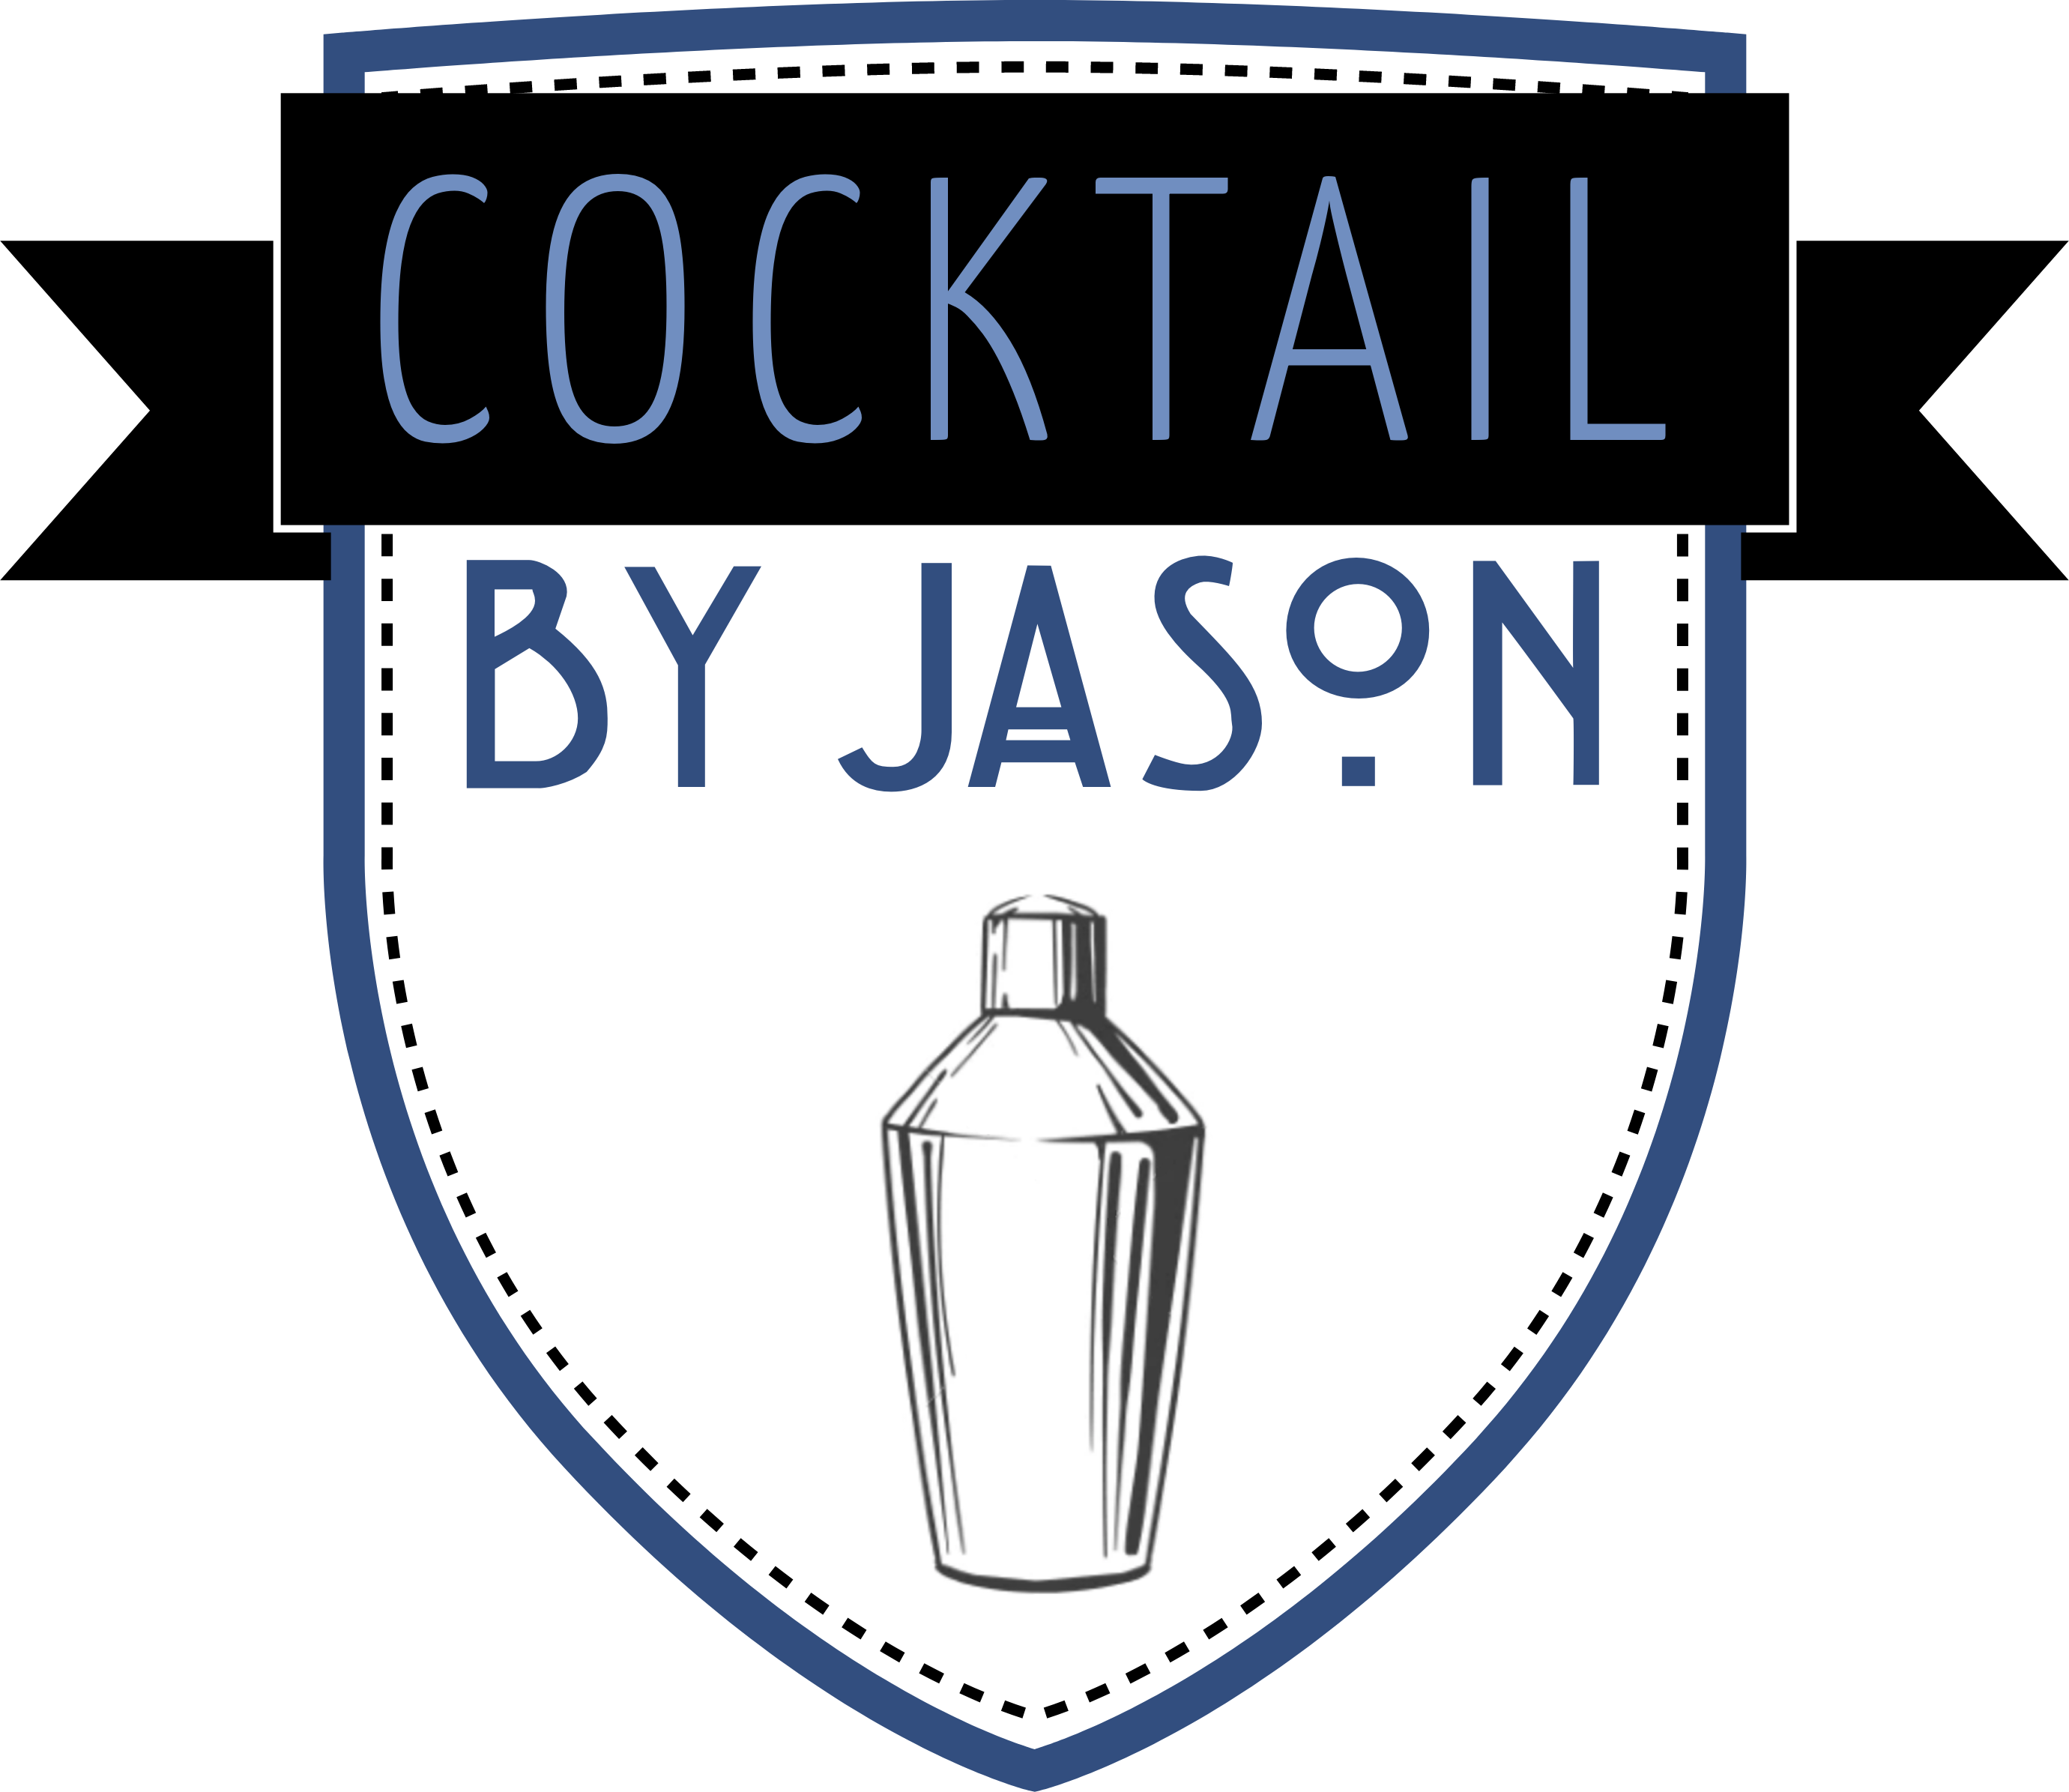 Cocktail By Jason